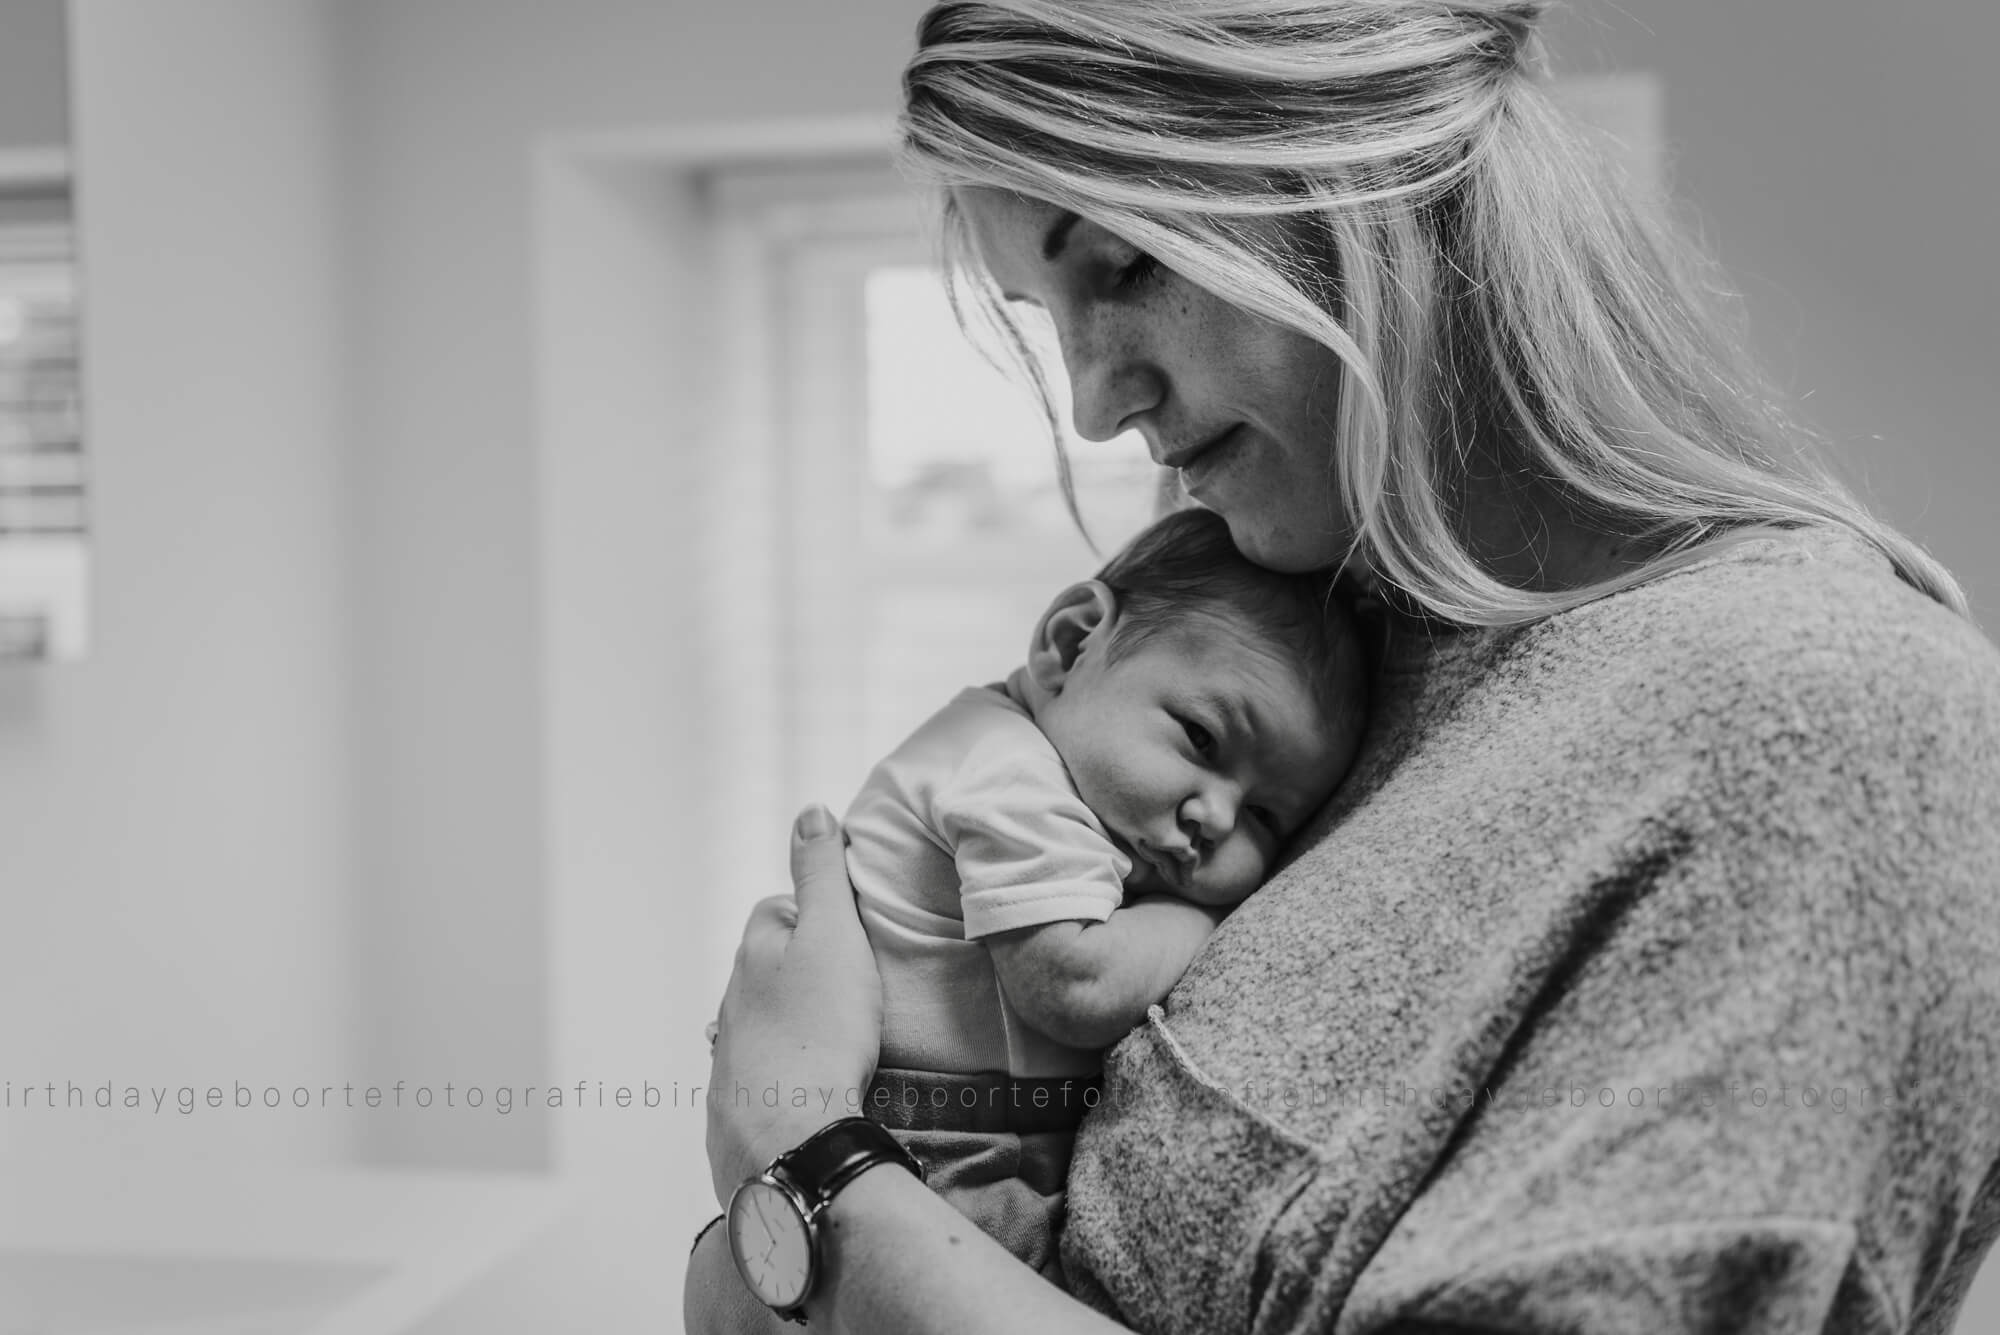 Lifestyle newbornfotografie Mill Birth Day geboortefotografie Cindy